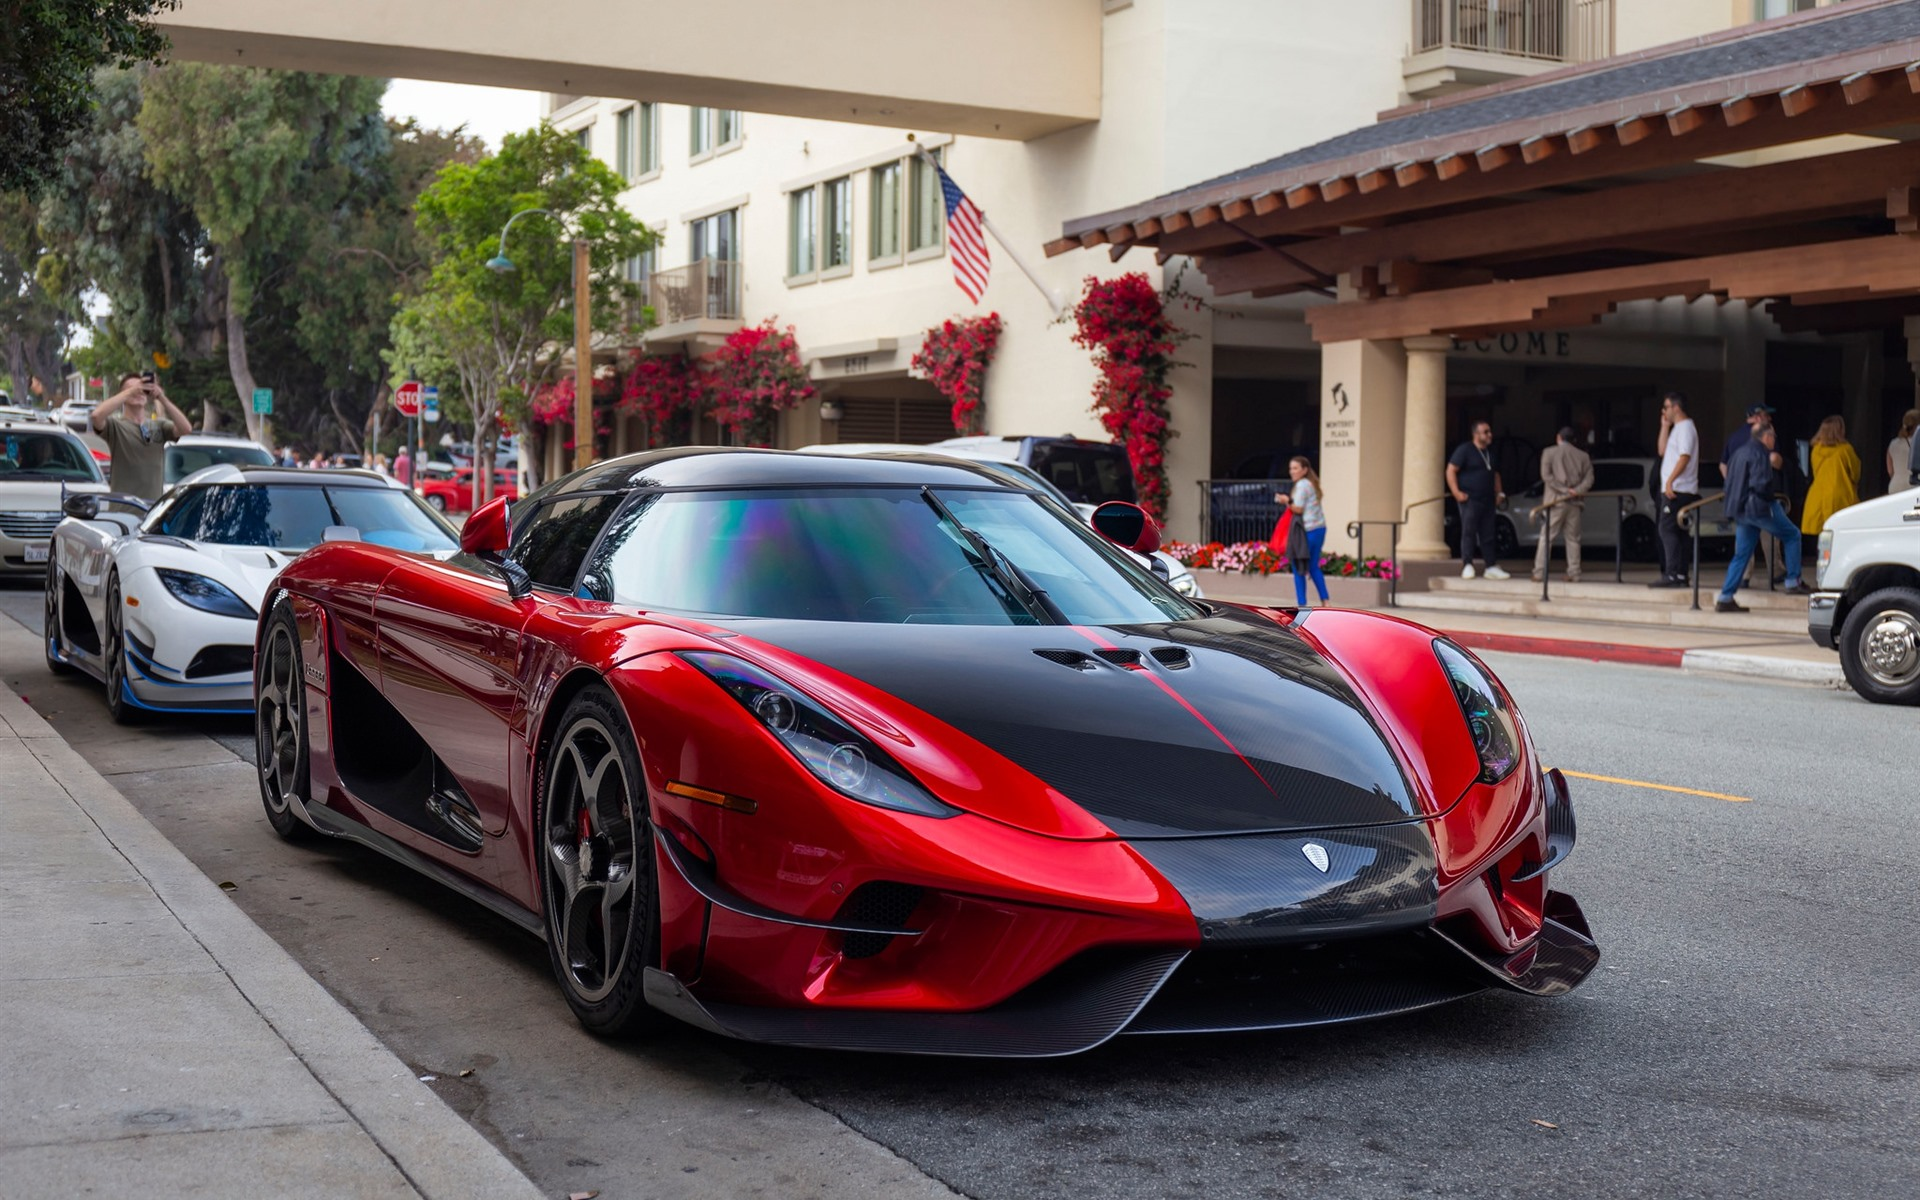 Wallpaper Koenigsegg red and white supercars 1920x1200 HD